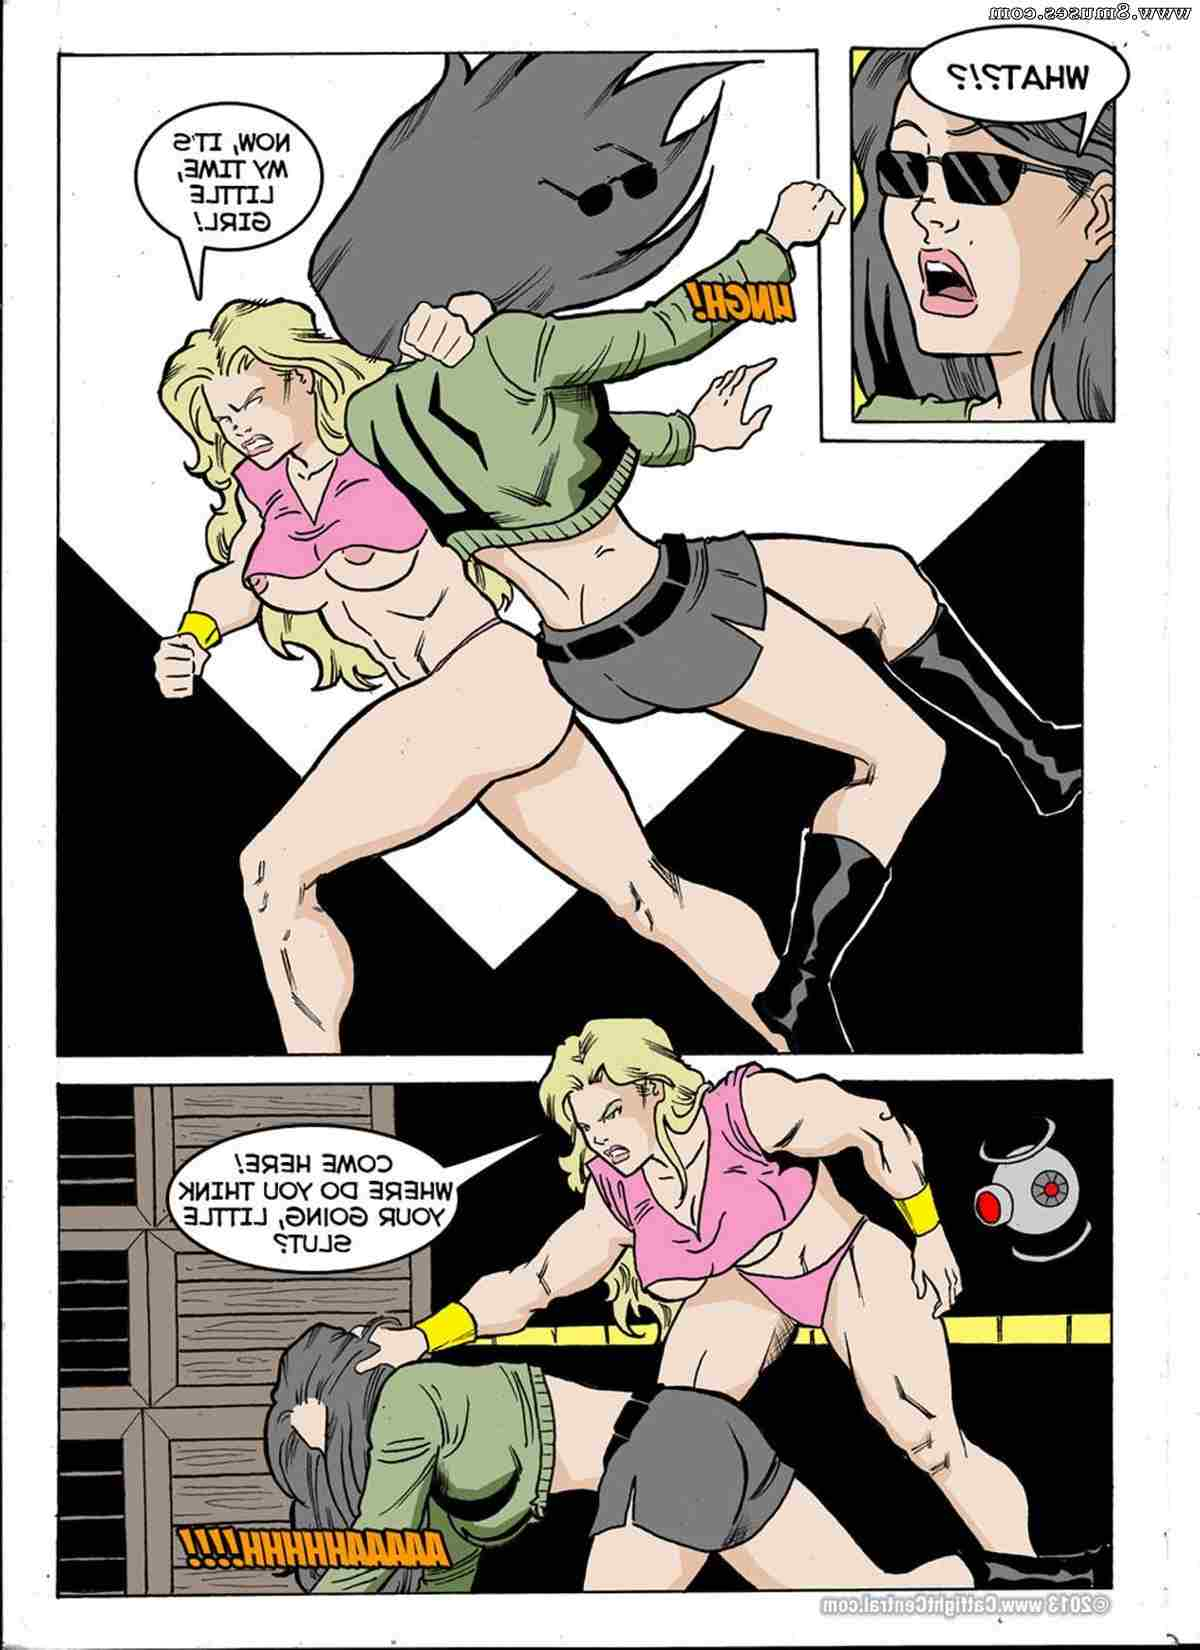 Central-Comics/Catfight-Central/Hipersex-Arena Hipersex_Arena__8muses_-_Sex_and_Porn_Comics_94.jpg